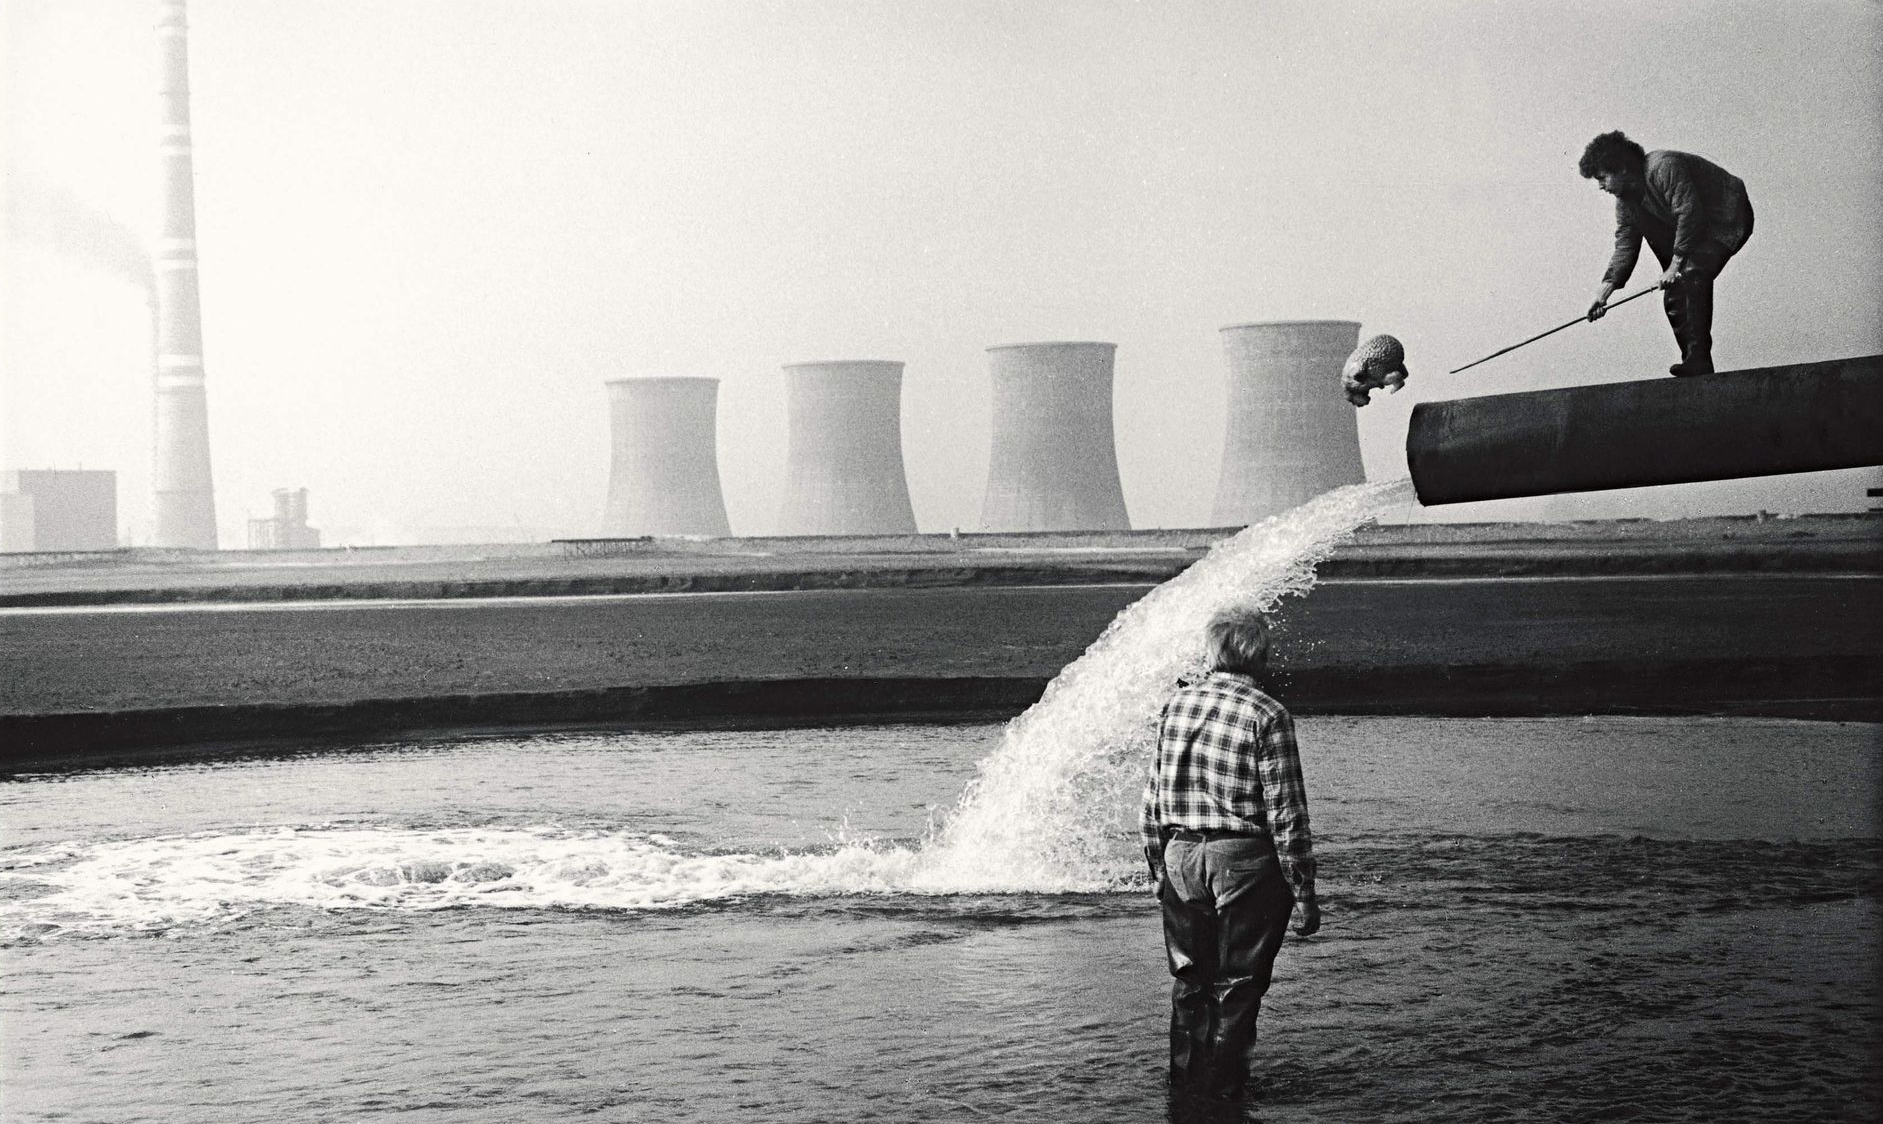 Two men in an oil industry in the Oscar nominated short film Oil Globbers